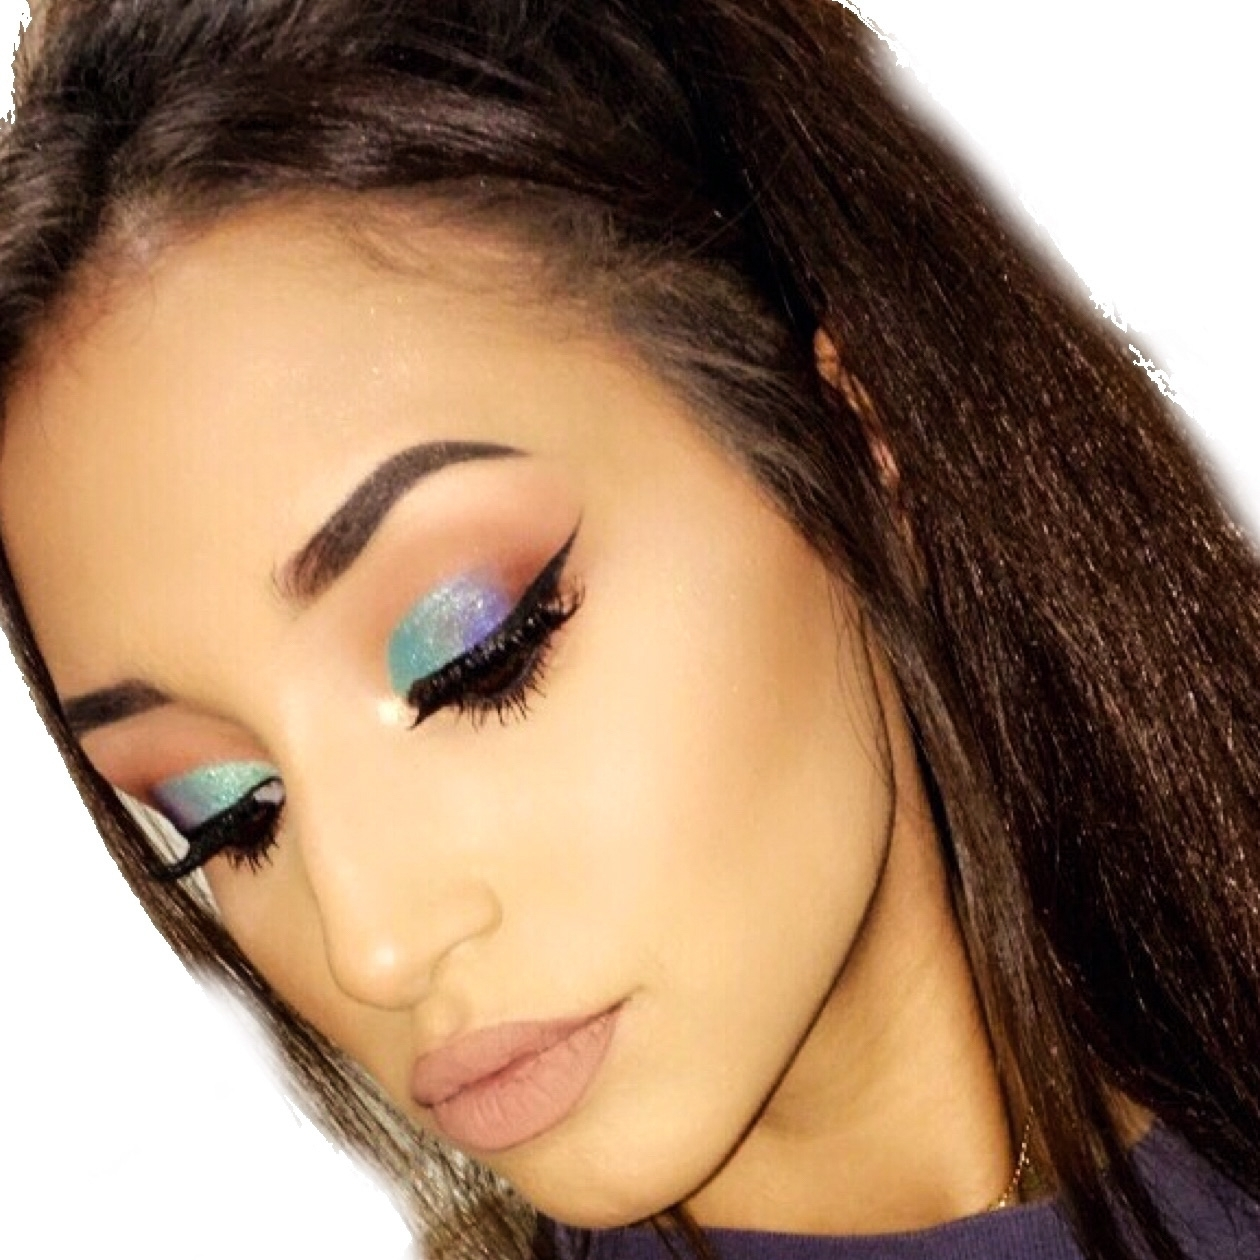 Eye Shadow Inspiration (for those stuck in a makeup rut)